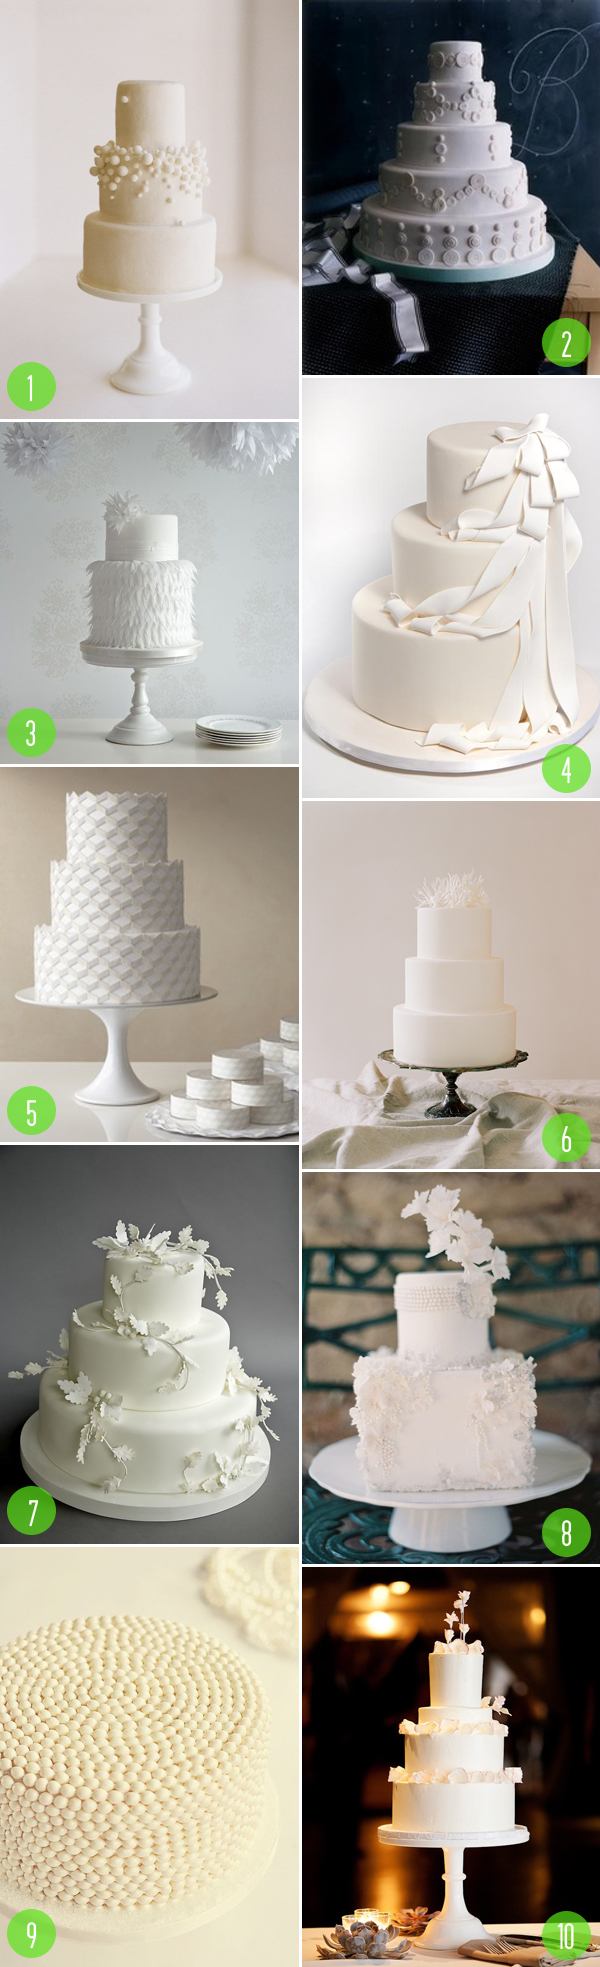 top 10 white wedding cakes brooklyn bride modern wedding blog. Black Bedroom Furniture Sets. Home Design Ideas